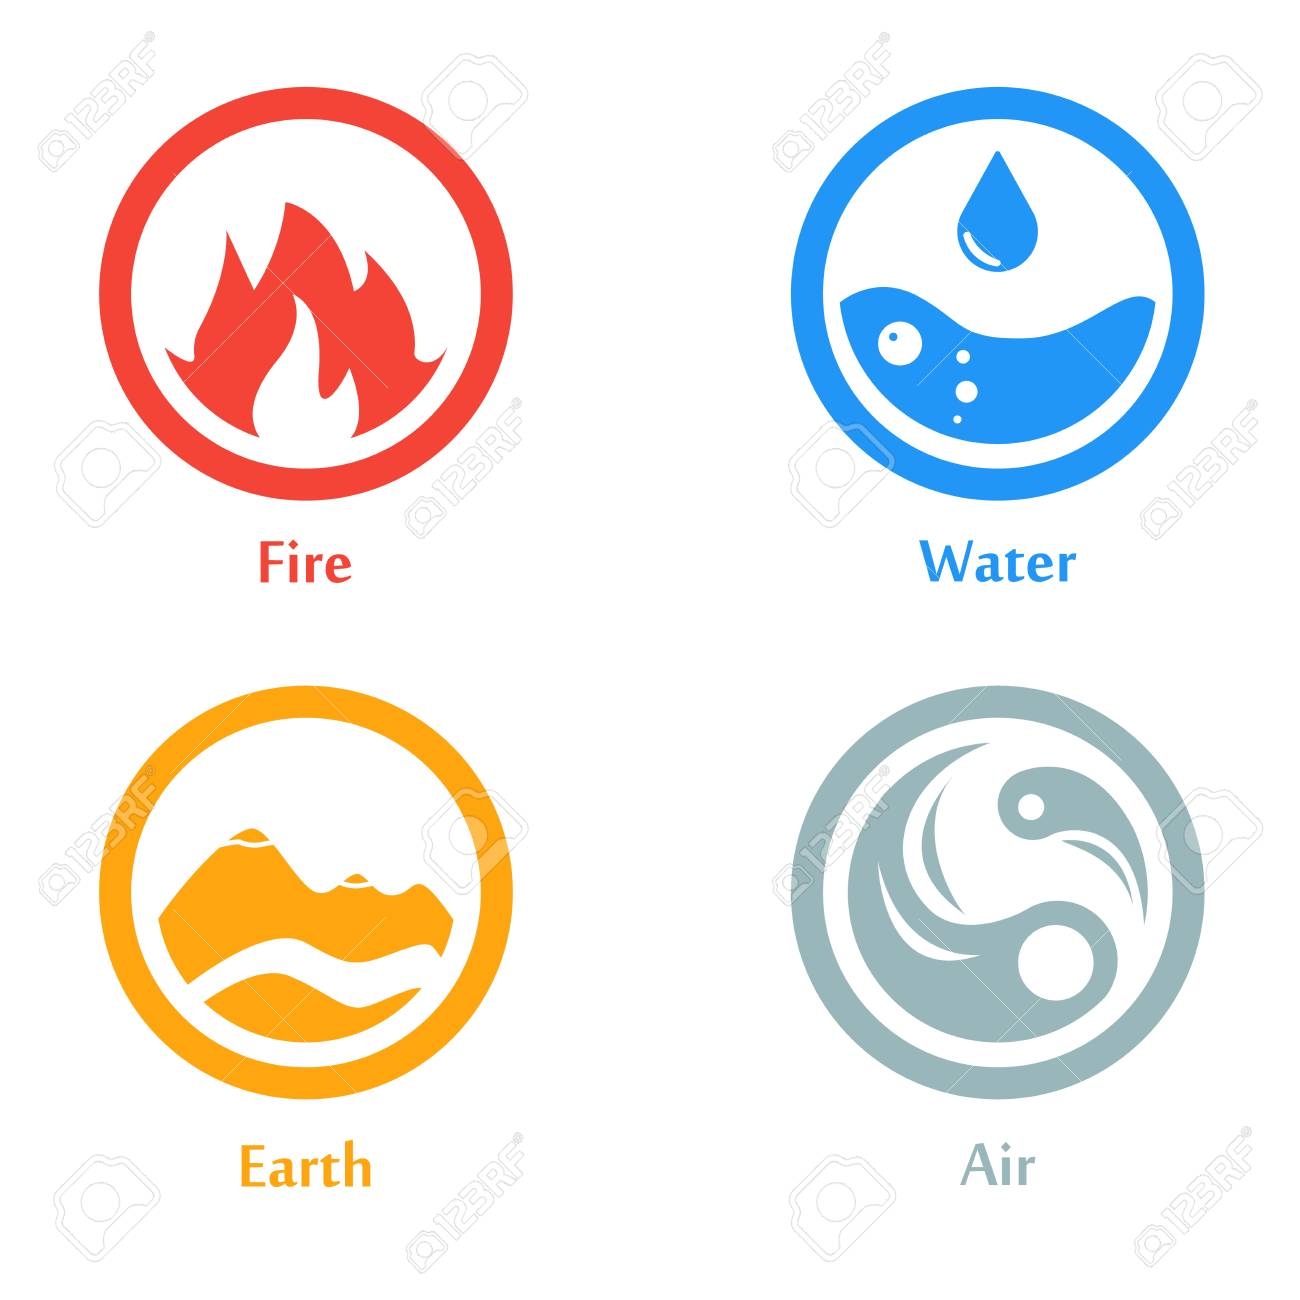 Raster Illustration Of Four Elements Icons Round Icons Symbols